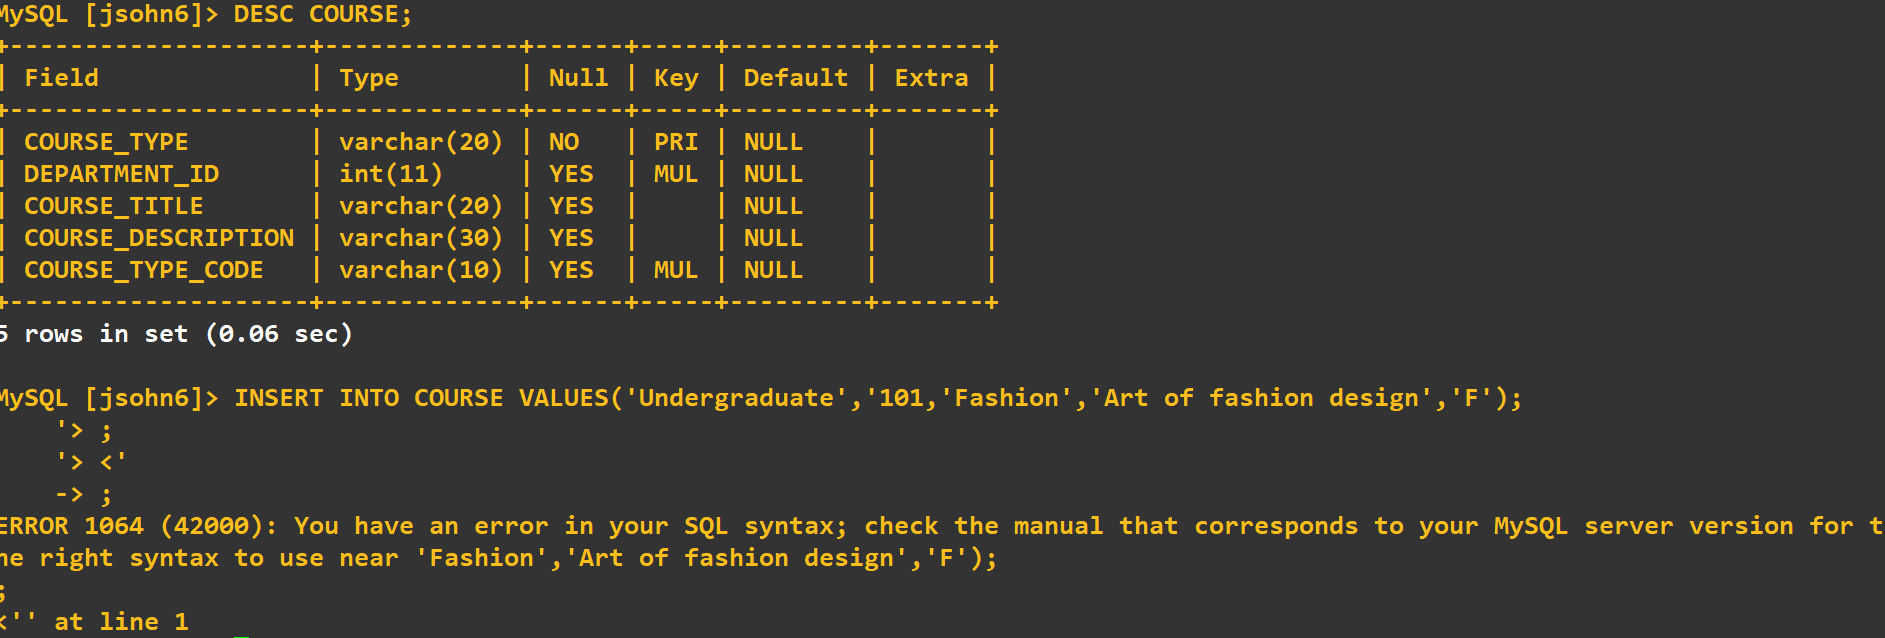 MYSQL [jsohn6] > DESC COURSE; Field | Туре Null Key Default Extra varchar(20) | NO YES varchar(20)| YES COURSE_DESCRIPTION varchar(30) | YES varchar(10) | YES PRI NULL MUL NULL NULL NULL MUL NULL COURSE_TYPE DEPARTMENT_ID COURSE_TITLE | int(11) COURSE_TYPE_CODE 5 rows in set (0.06 sec) MYSQL [jsohn6]> INSERT INTO COURSE VALUES ( ' Undergraduate','101,'Fashion','Art of fashion design','F'); -> ; ERROR 1064 (42000): You have an error in your SQL syntax; check the manual that corresponds to your MySQL server version for t e right syntax to use near 'Fashion', 'Art of fashion design', 'F'); k'' at line 1